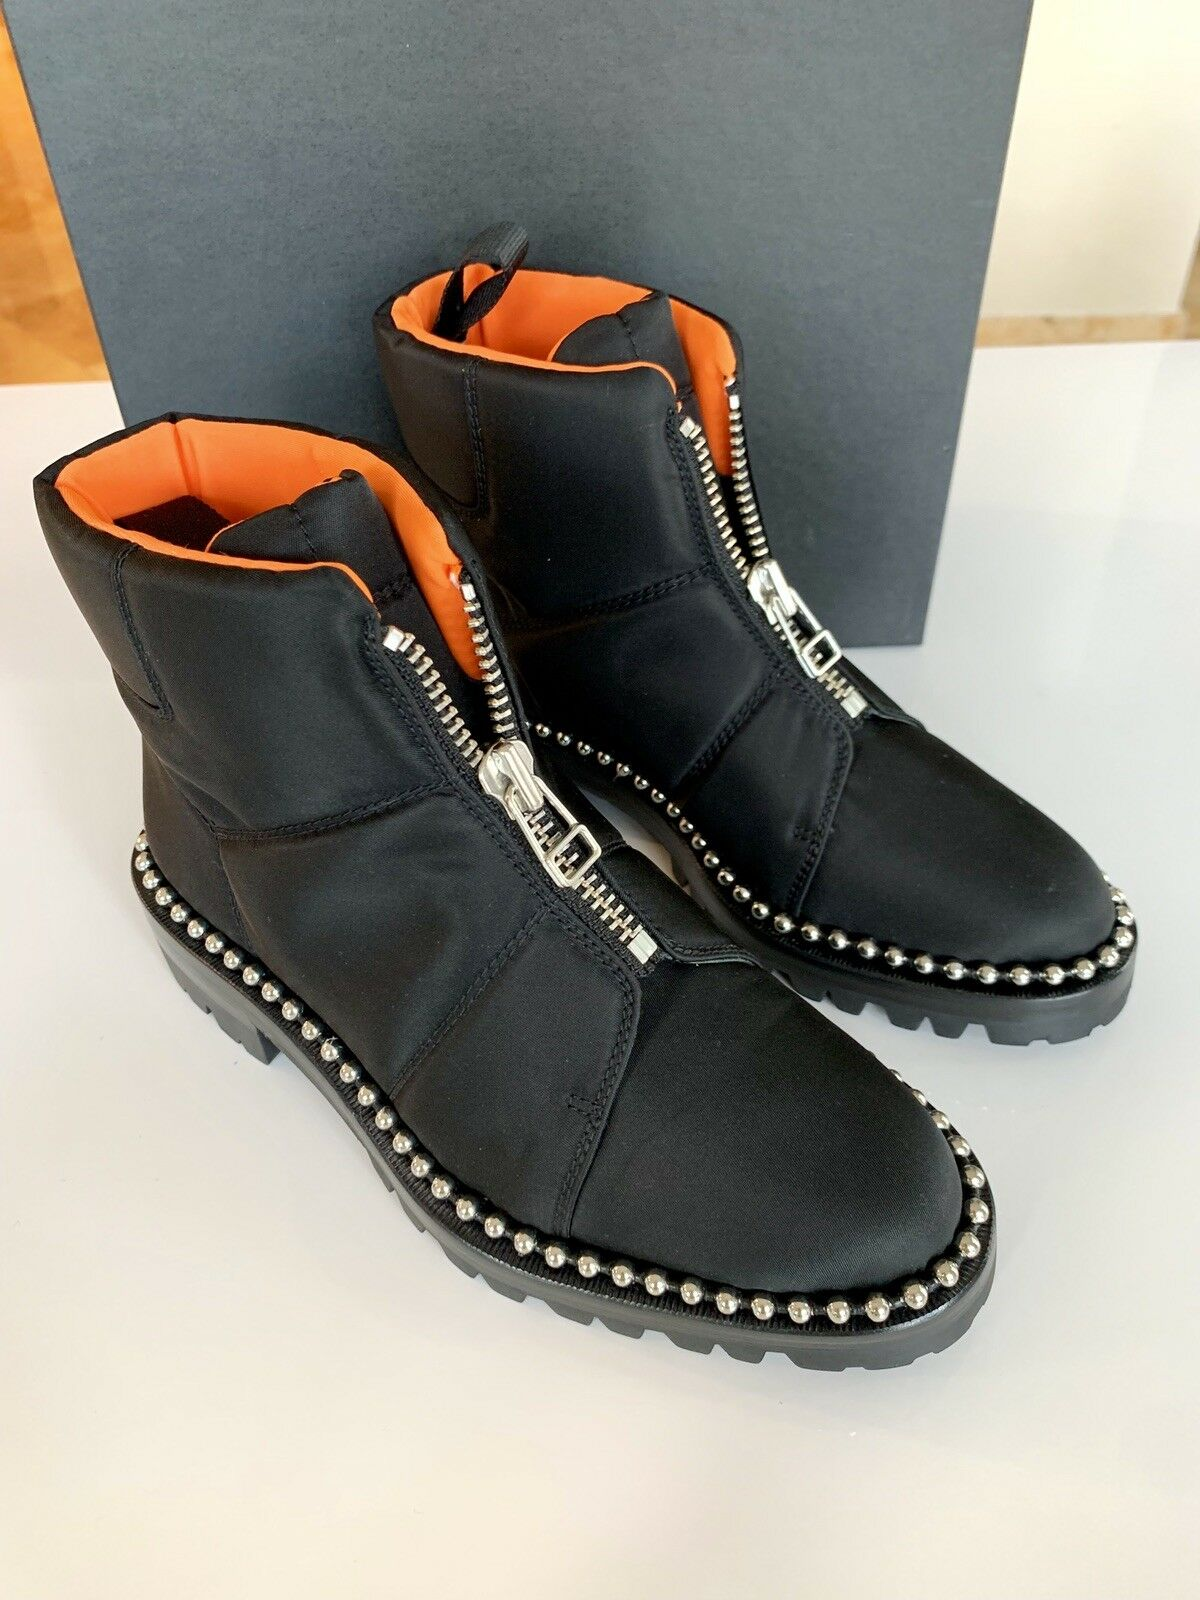 Alexander Wang Cooper Canvas Black Pull On Zip Studded Ankle Booties Boots 6.5